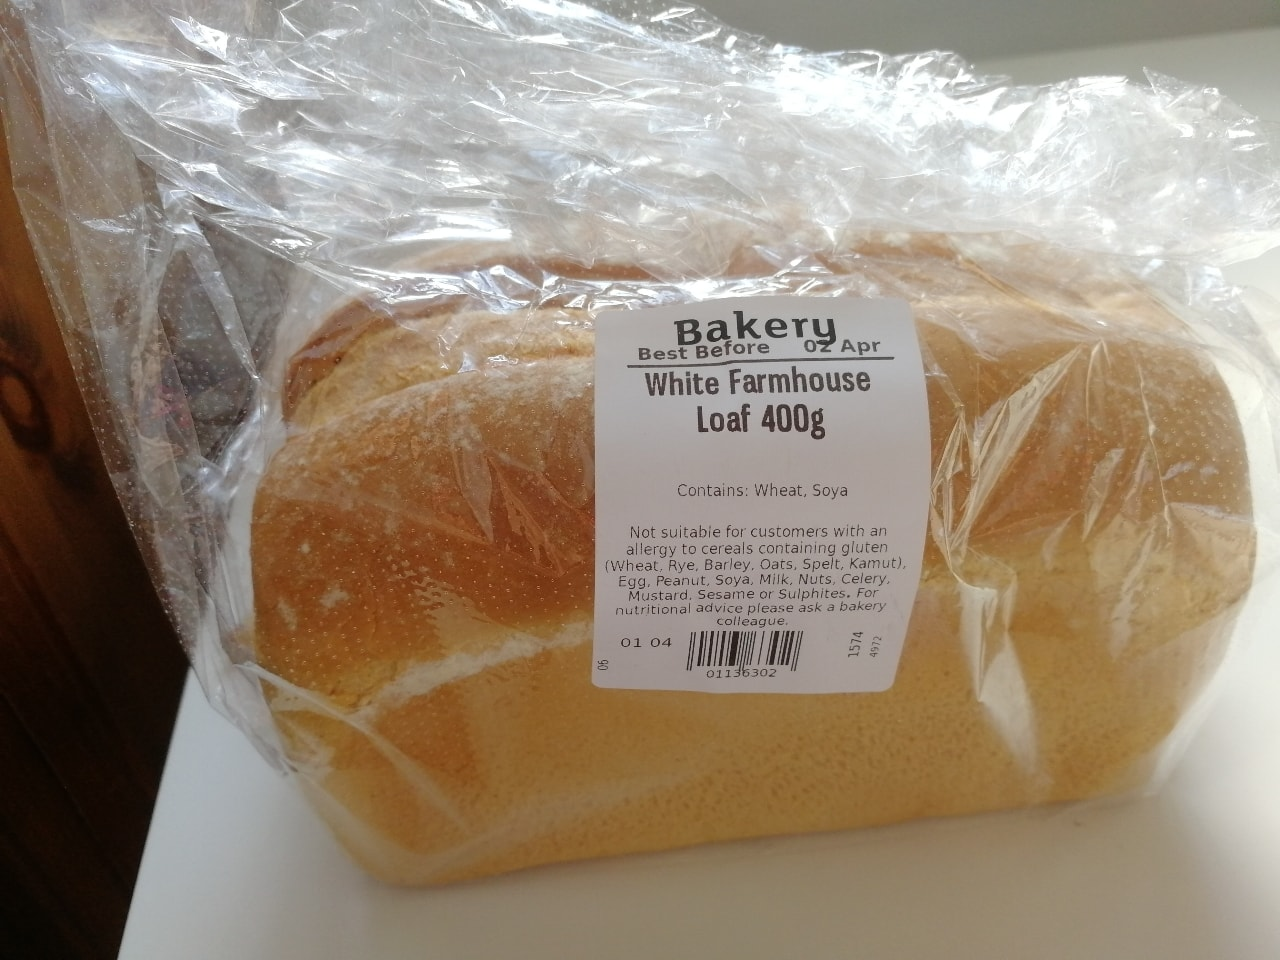 White Farmhouse Loaf 400g